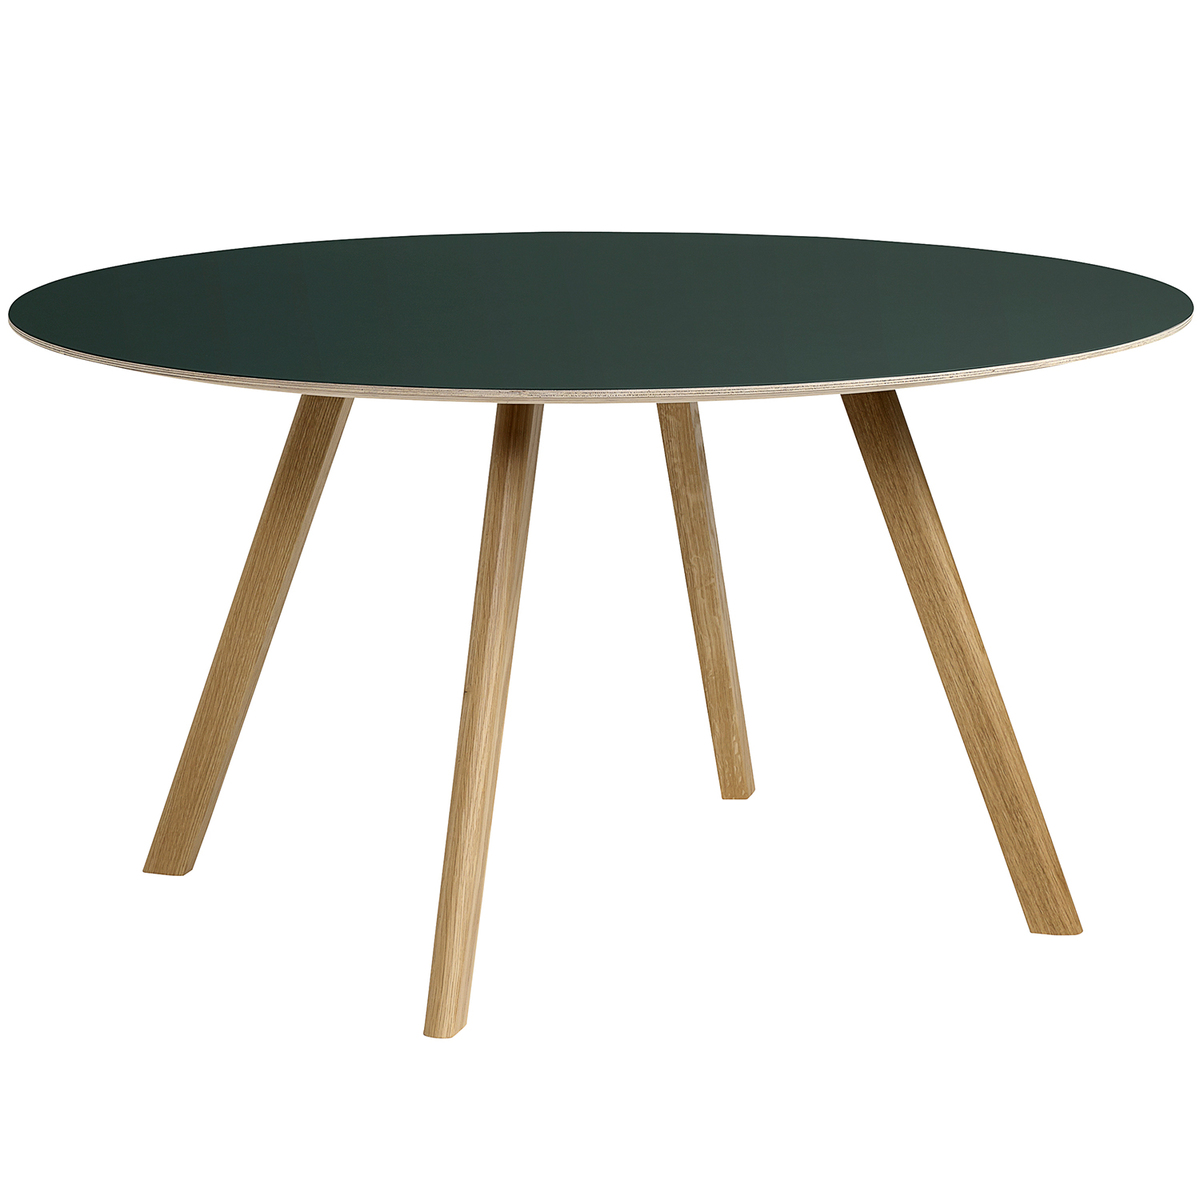 Table 140 Hay Cph25 Table Round 140 Cm Lacquered Oak Green Lino Finnish